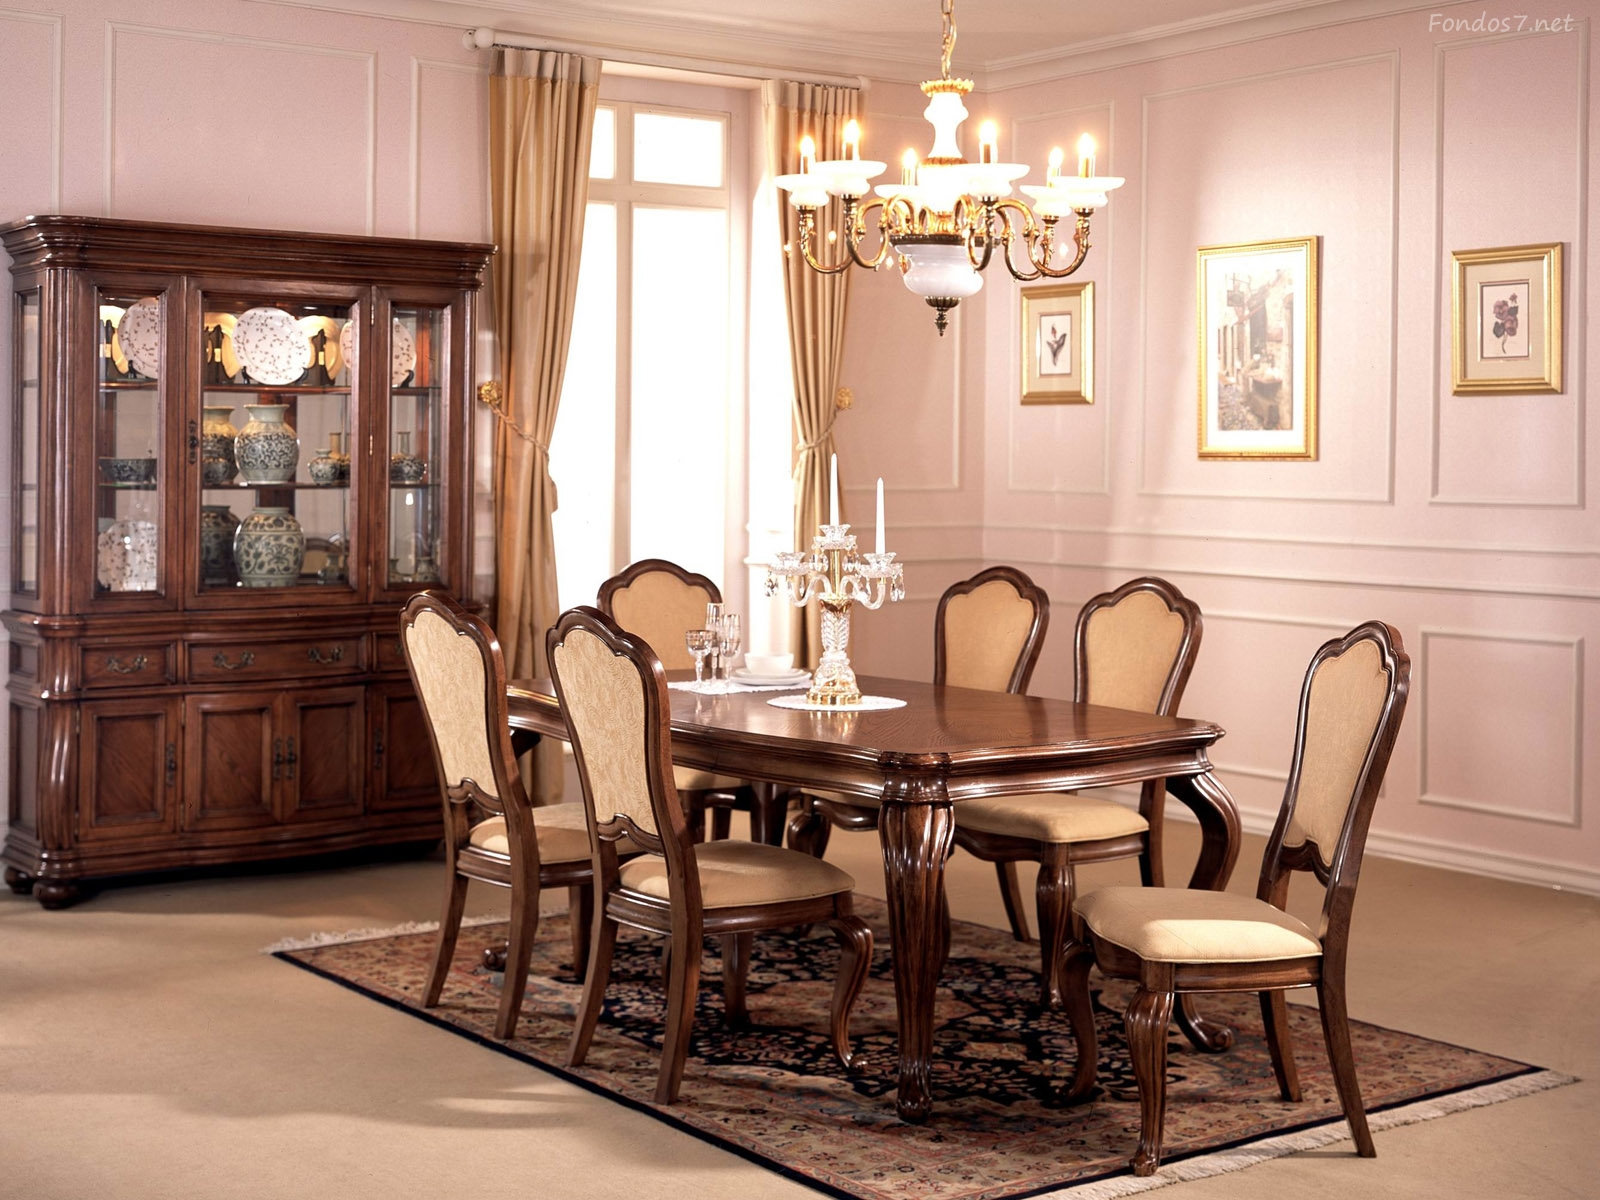 Fotos de comedores decorados for Homes with beautiful dining rooms